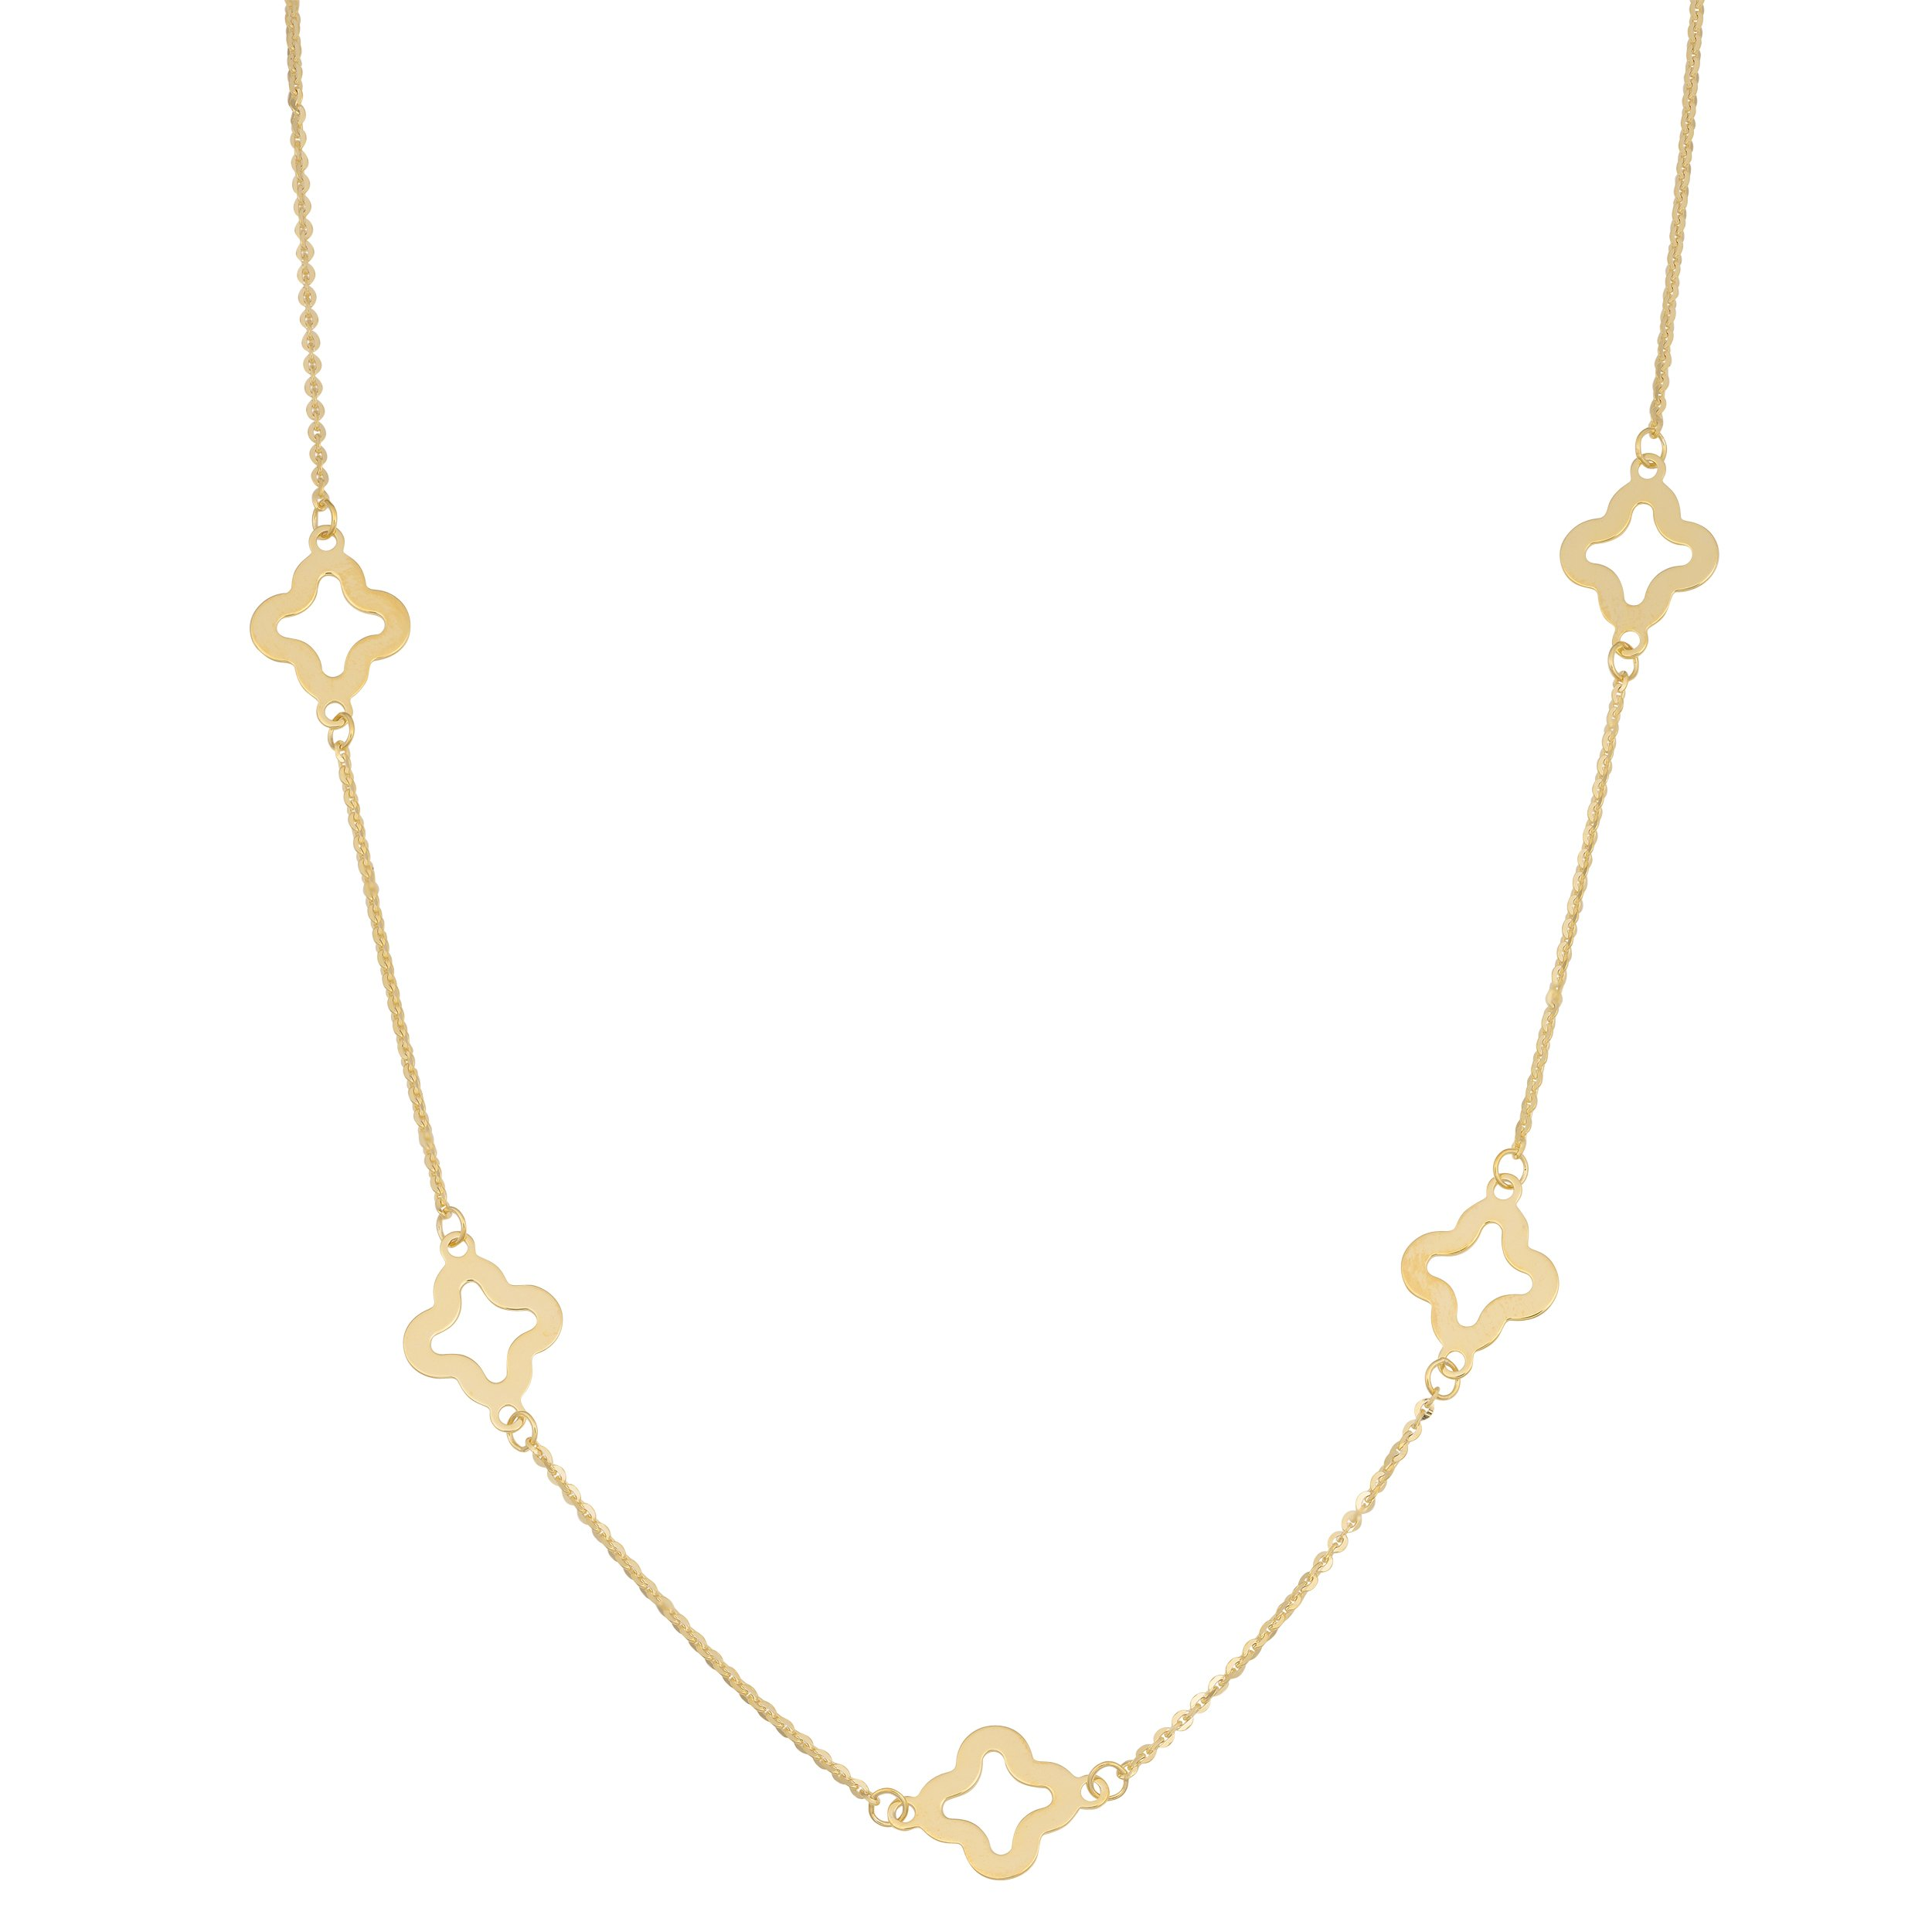 14k Yellow Gold Clover Flower Station Necklace (18 inch) by Kooljewelry